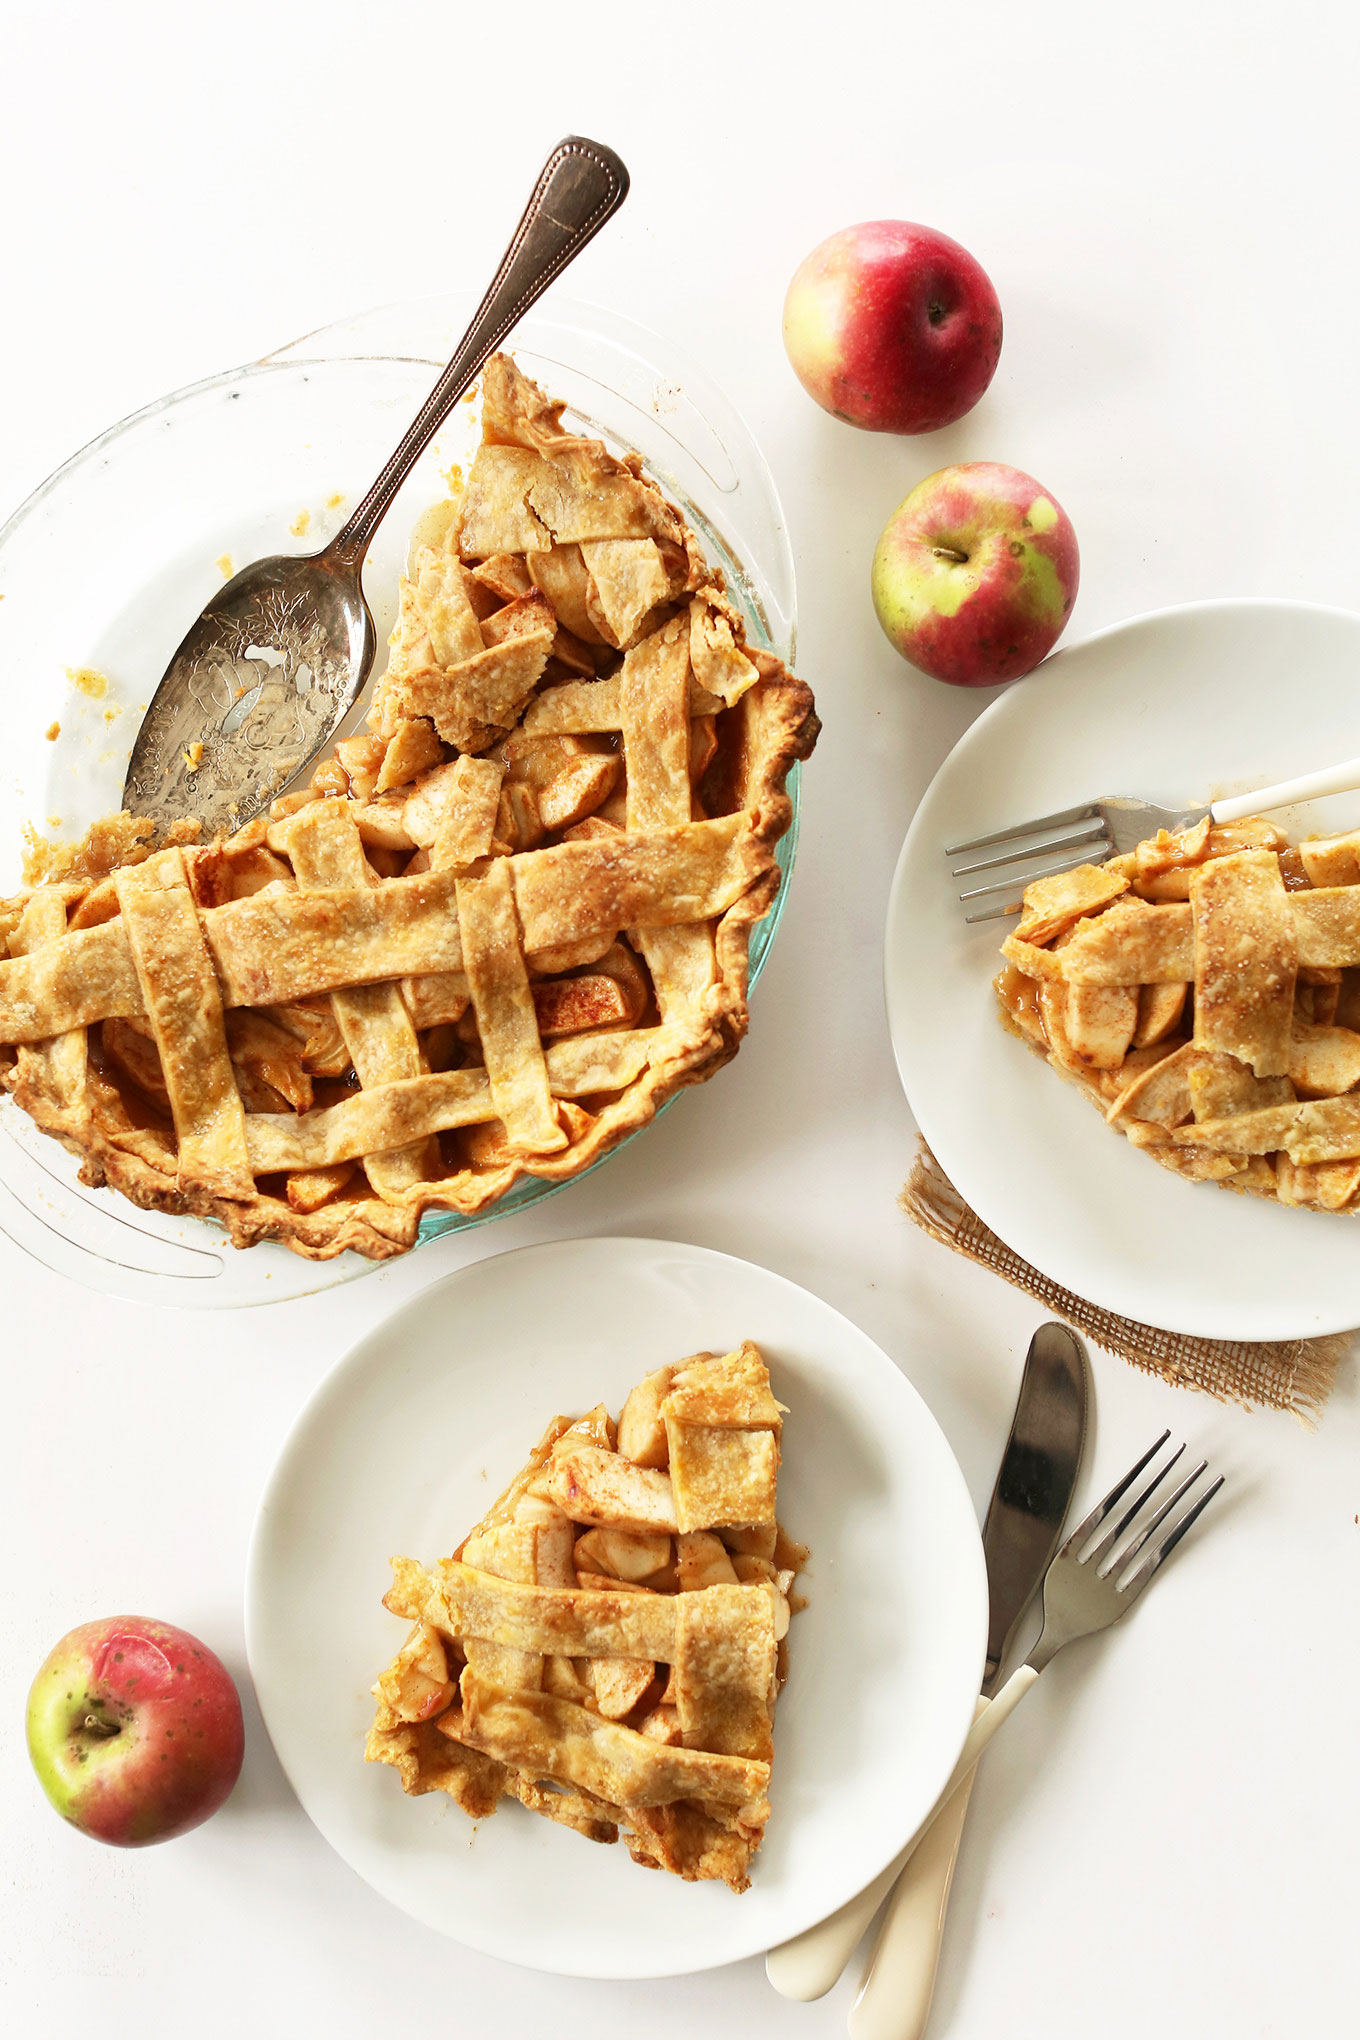 Plates with slices of vegan apple pie alongside the rest of the pie